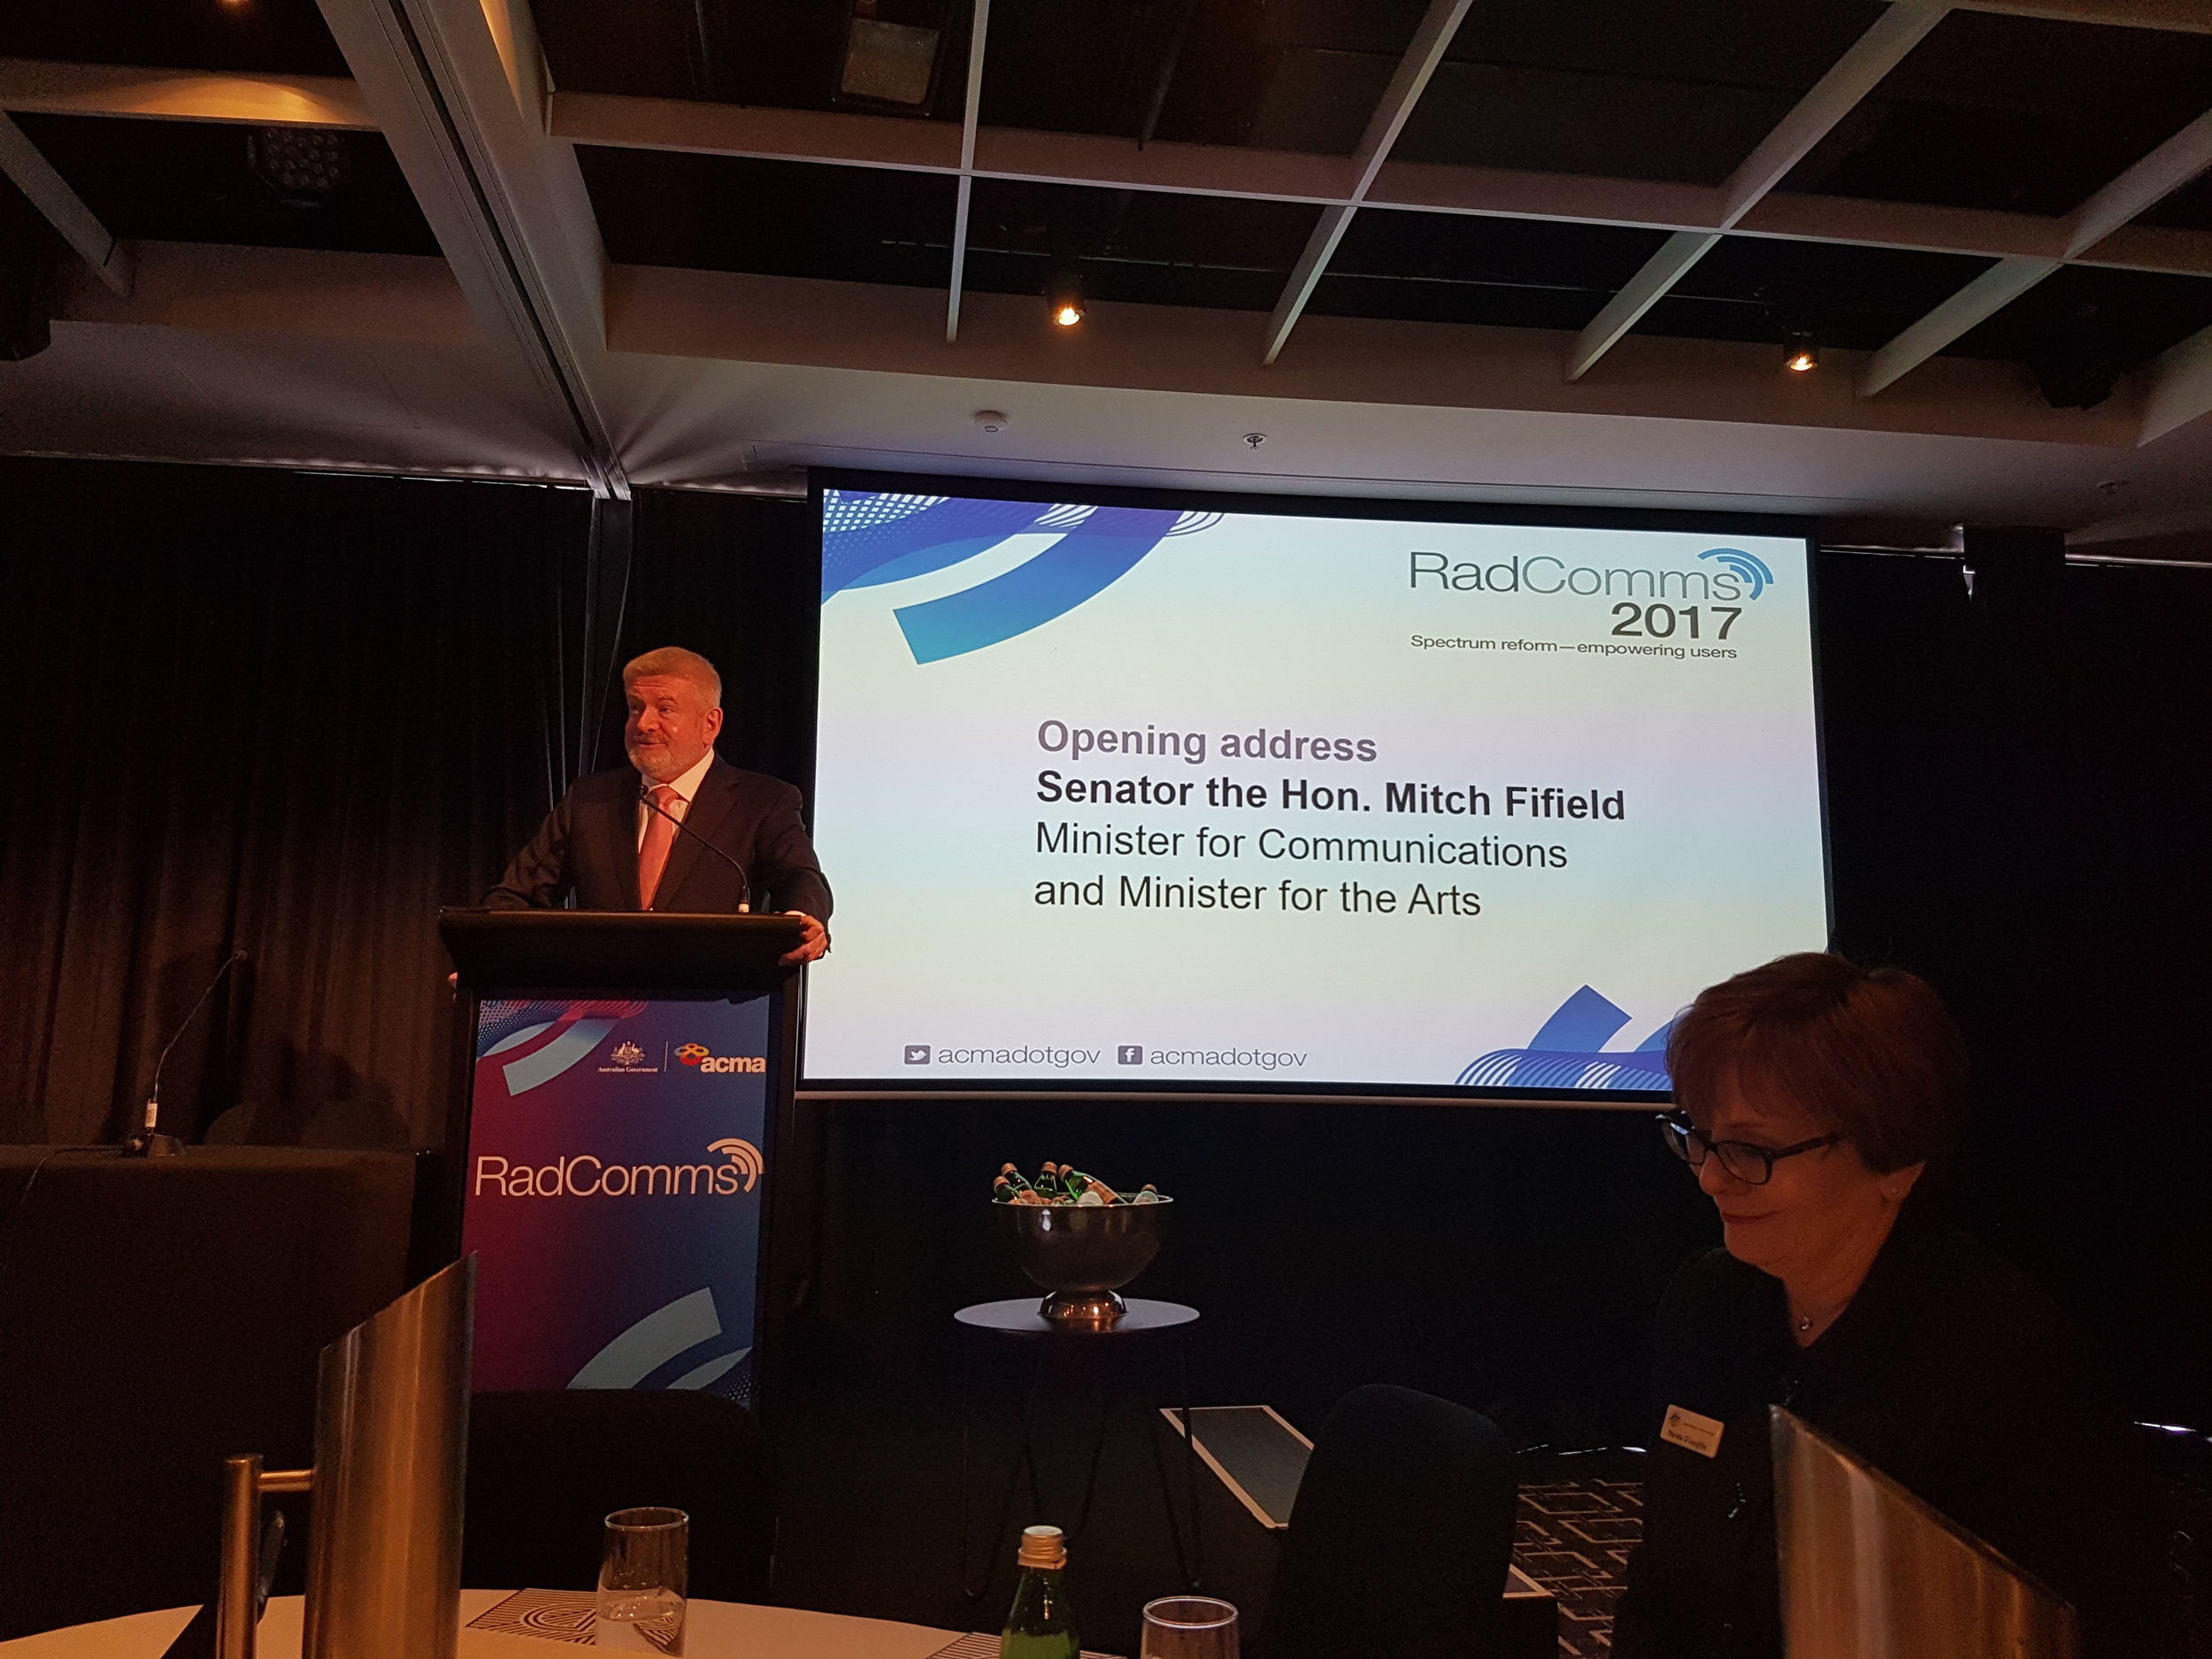 Honourable Minister Mitch Fifield, Minister for Communications and Minister for the Arts giving the opening address at RADCOMMS17. In foreground, the new Chairwoman of the Australian Communications Media Authority (ACMA), Derida O'Loughlin, the first female chairwoman of the ACMA.